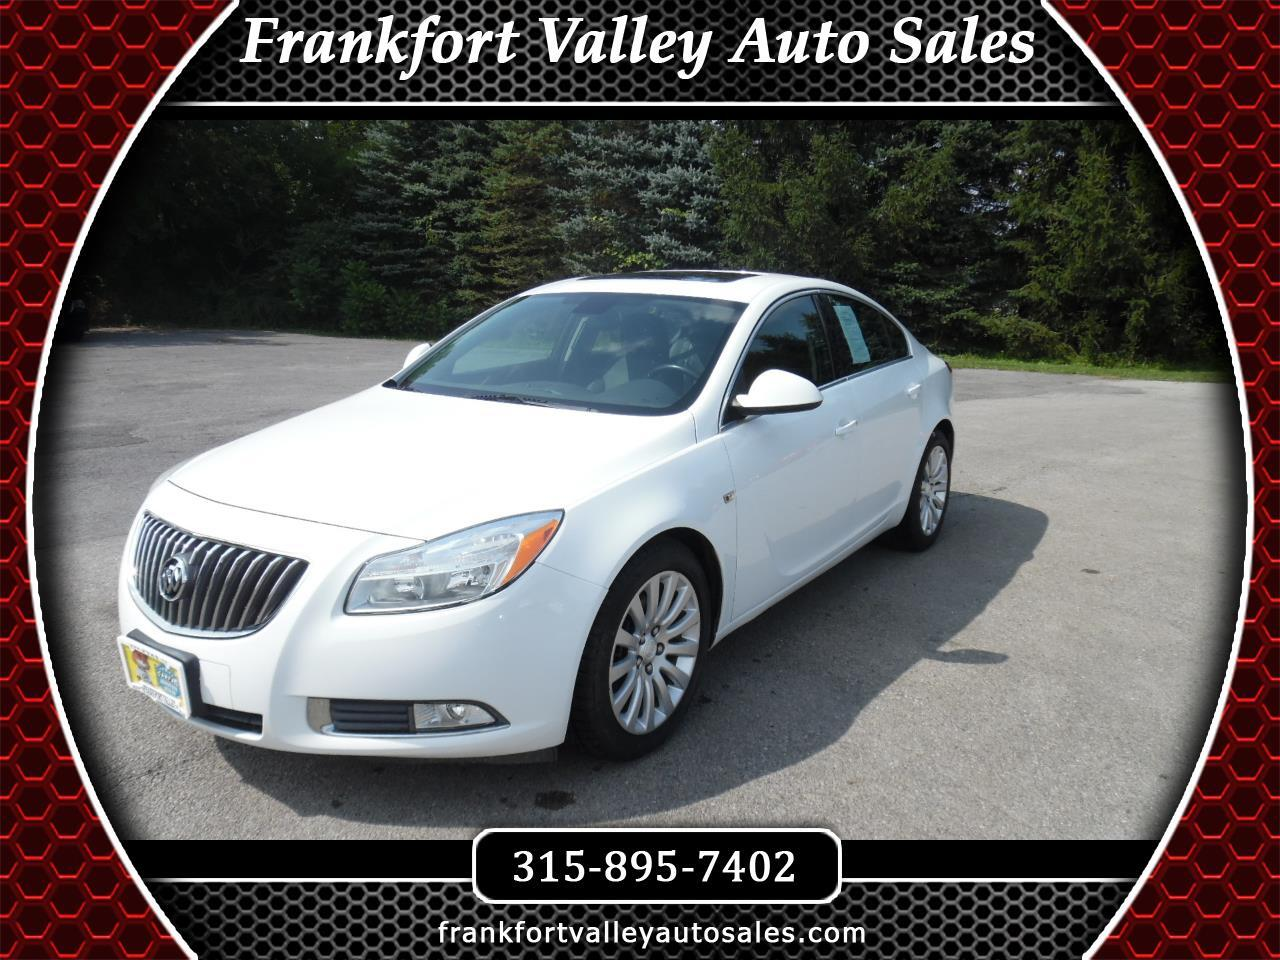 Buick Regal 4dr Sdn CXL Turbo TO2 (Russelsheim) *Ltd Avail* 2011